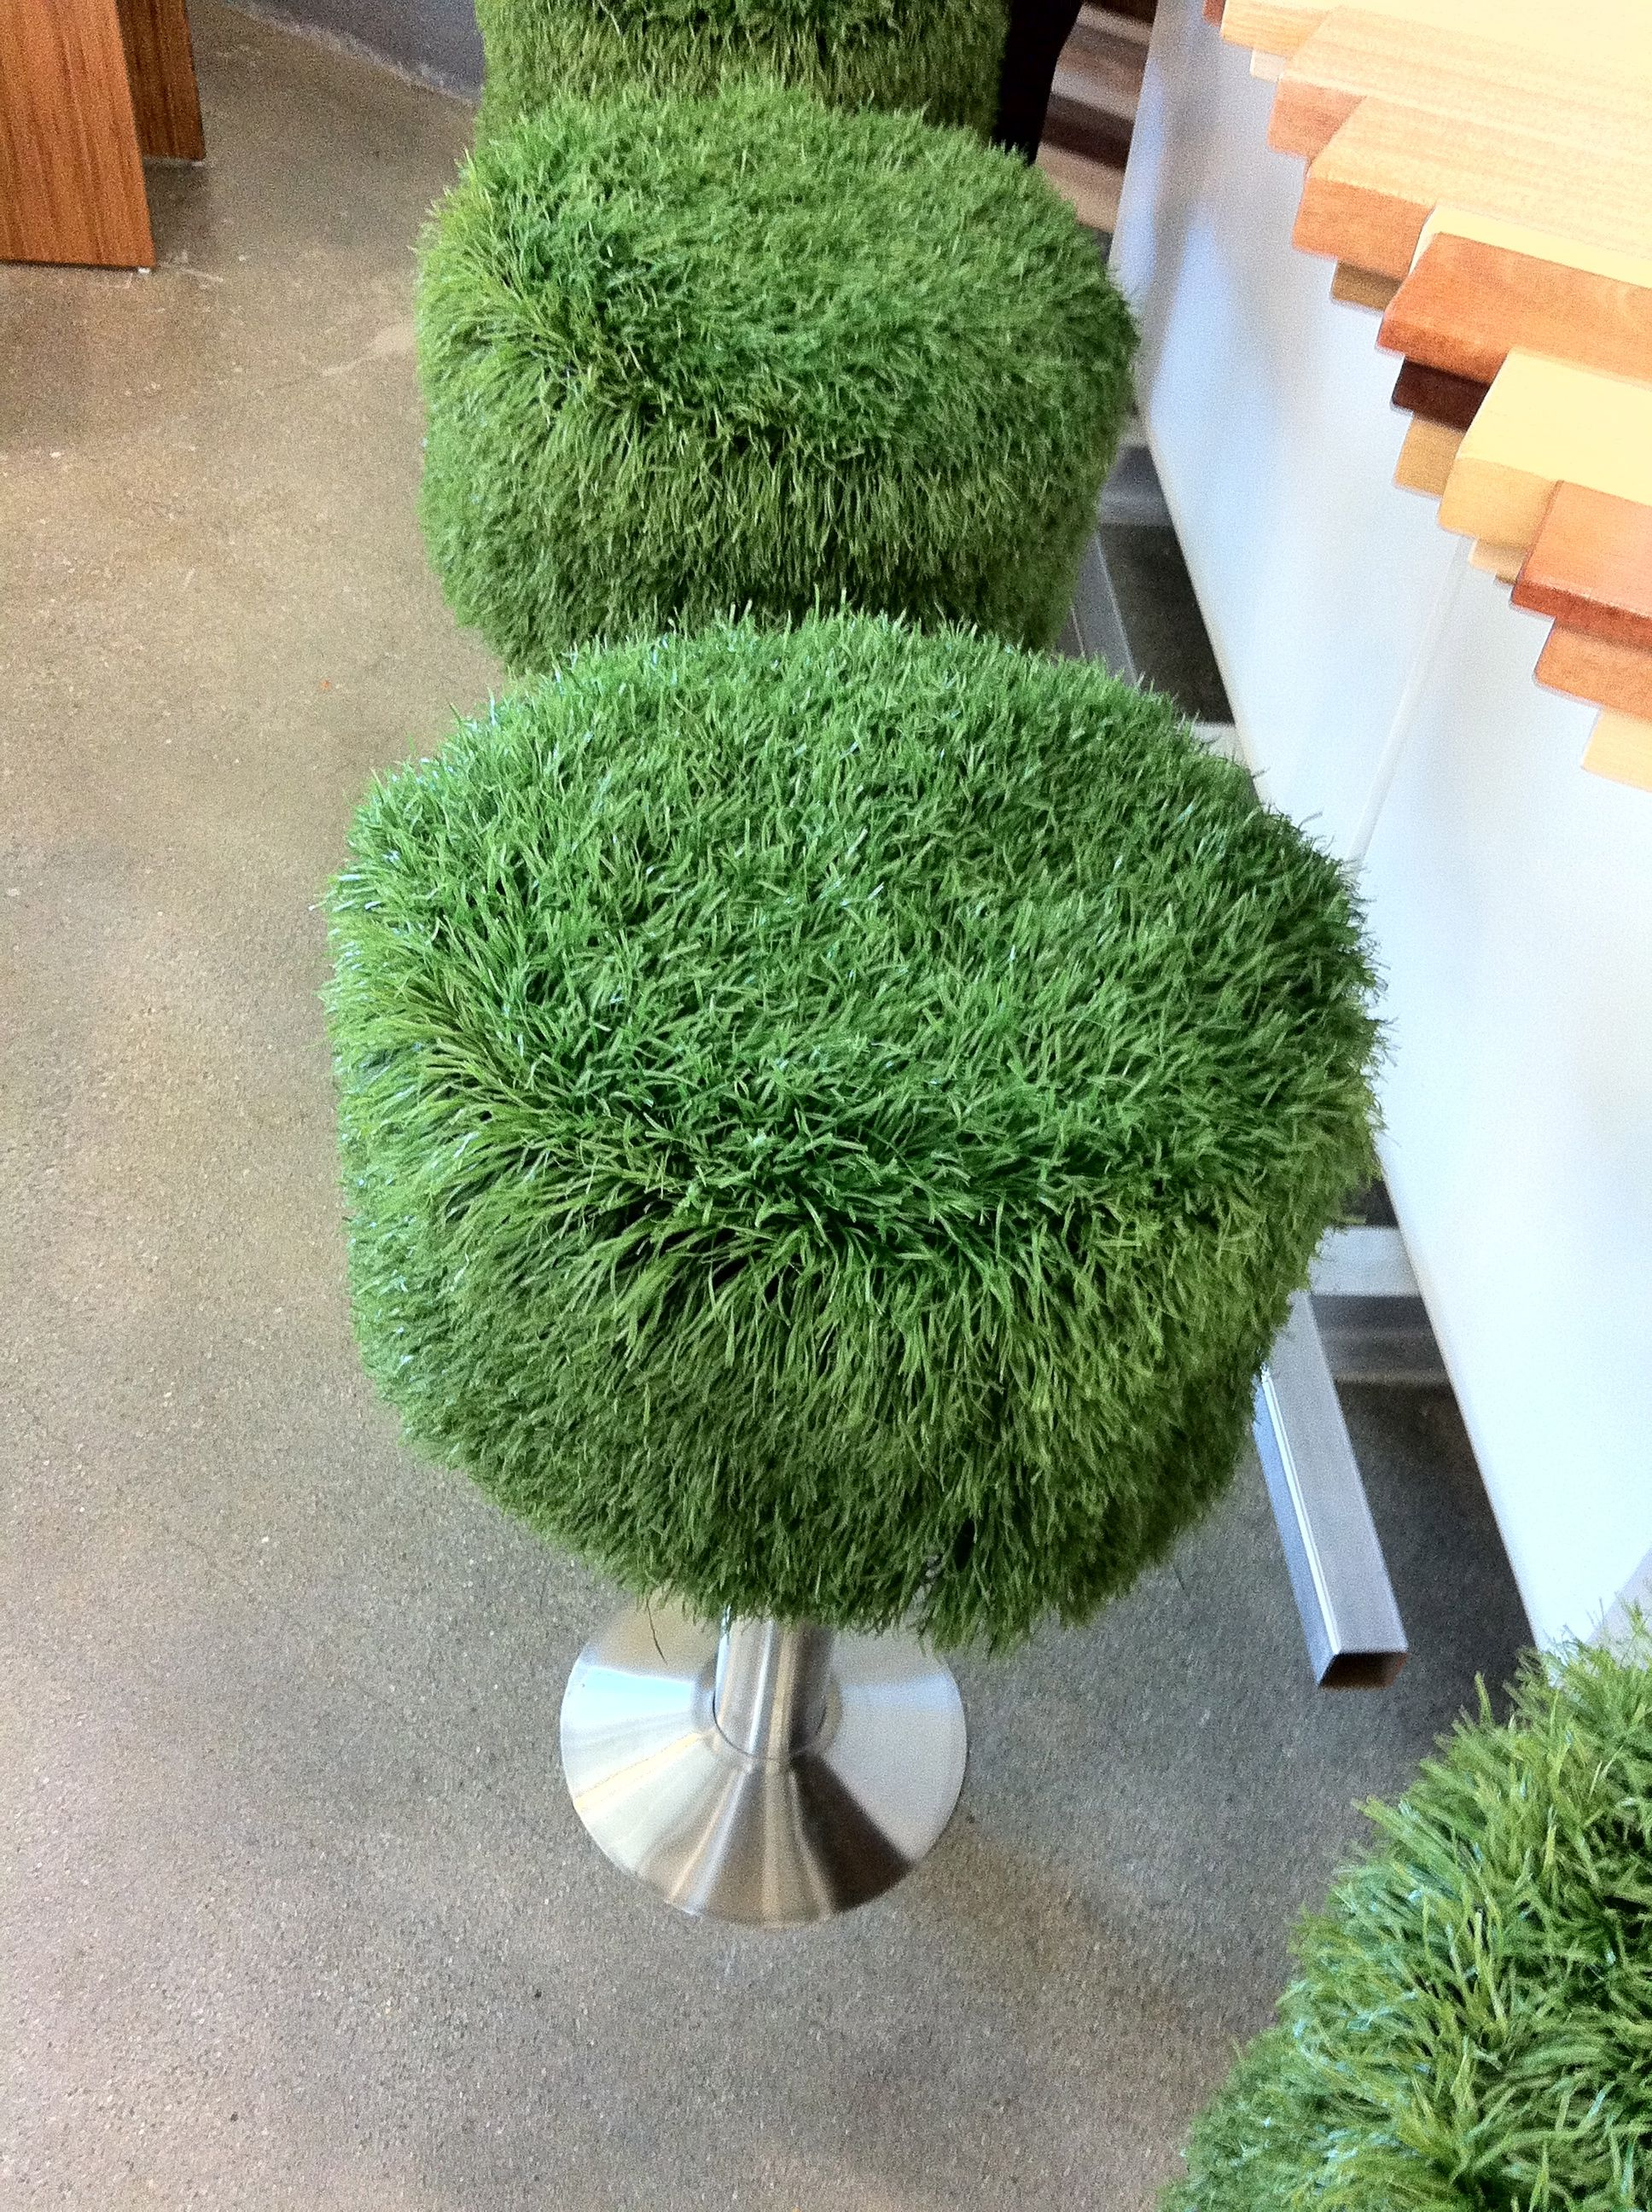 astroturf bar stools at santa monica mall foodcourt la diy pinterest gazon synth tique. Black Bedroom Furniture Sets. Home Design Ideas